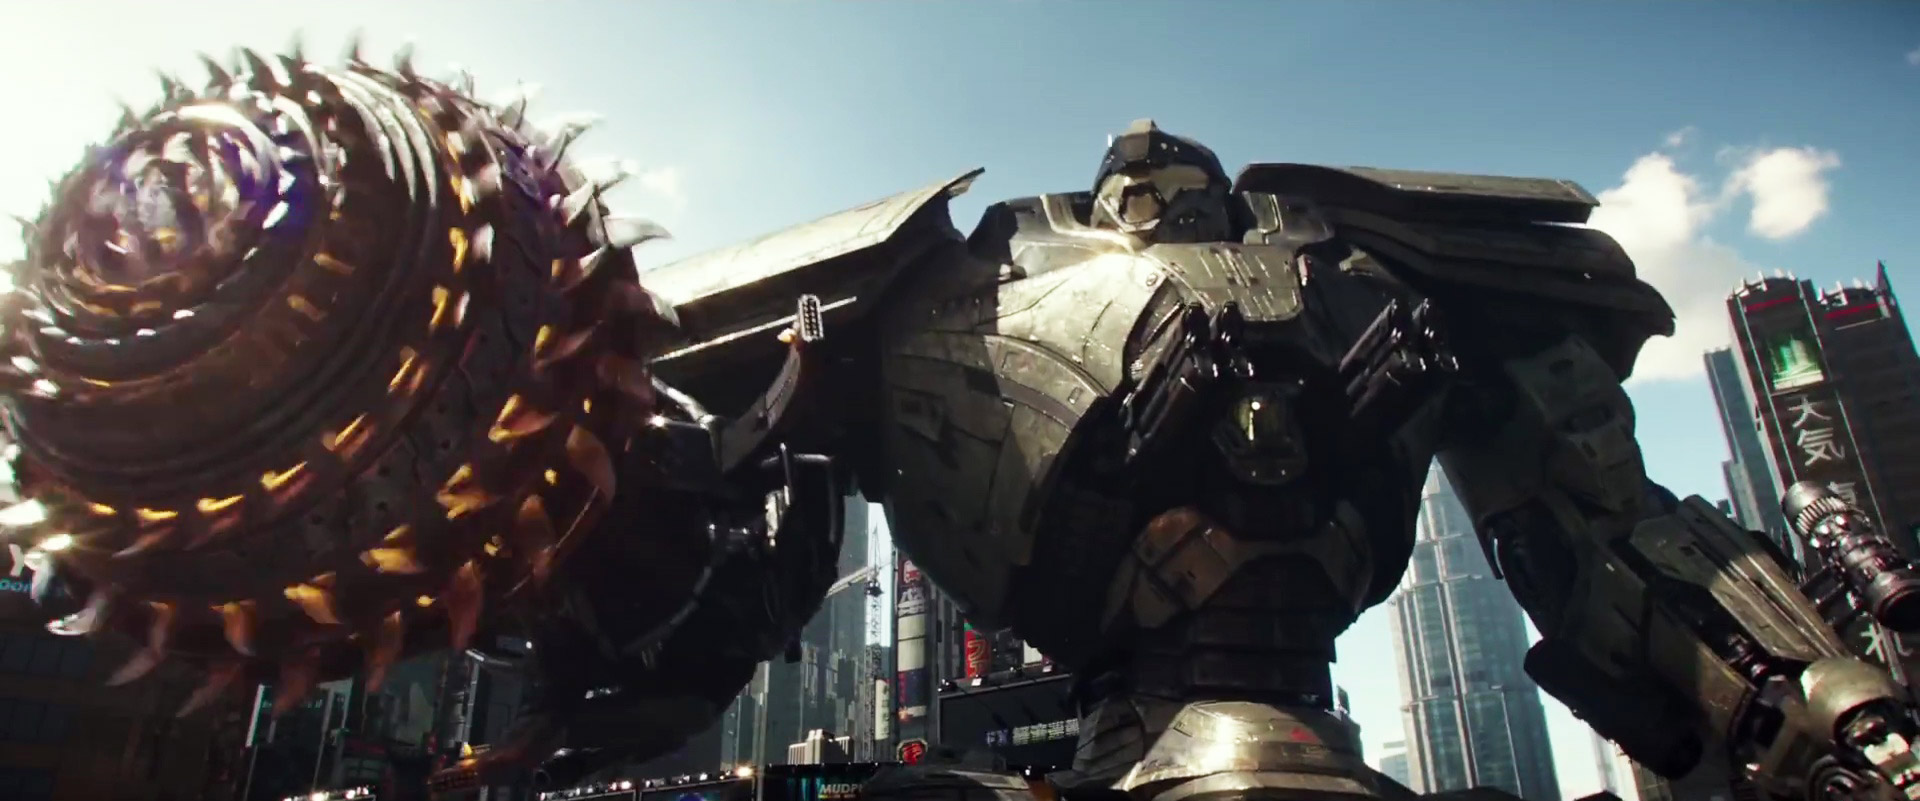 First Trailer for Pacific Rim: Uprising | Pacific Rim Sci ... Pacific Rim